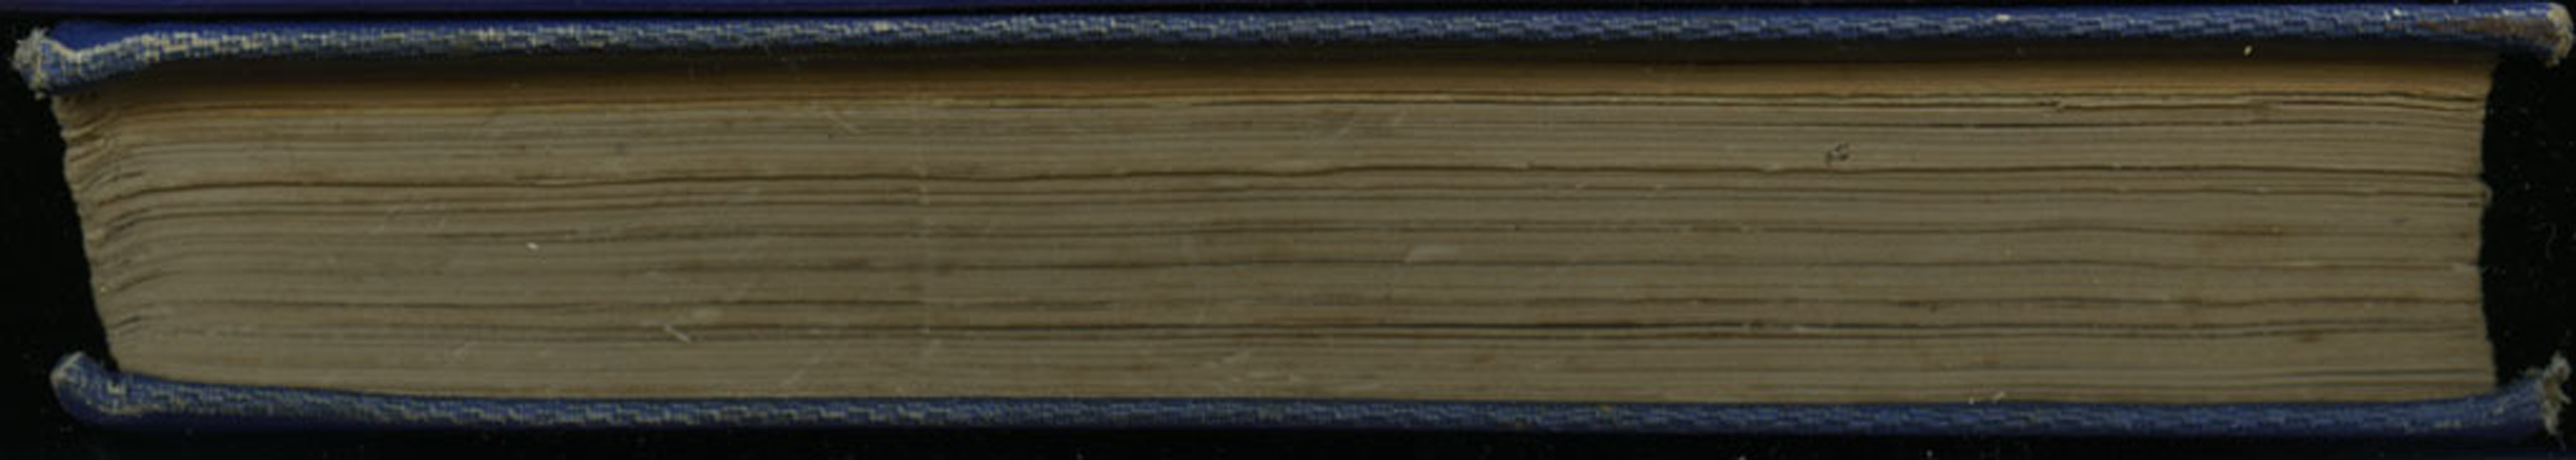 Fore Edge of Volume 2 of the 1852 Sampson Low Reprint